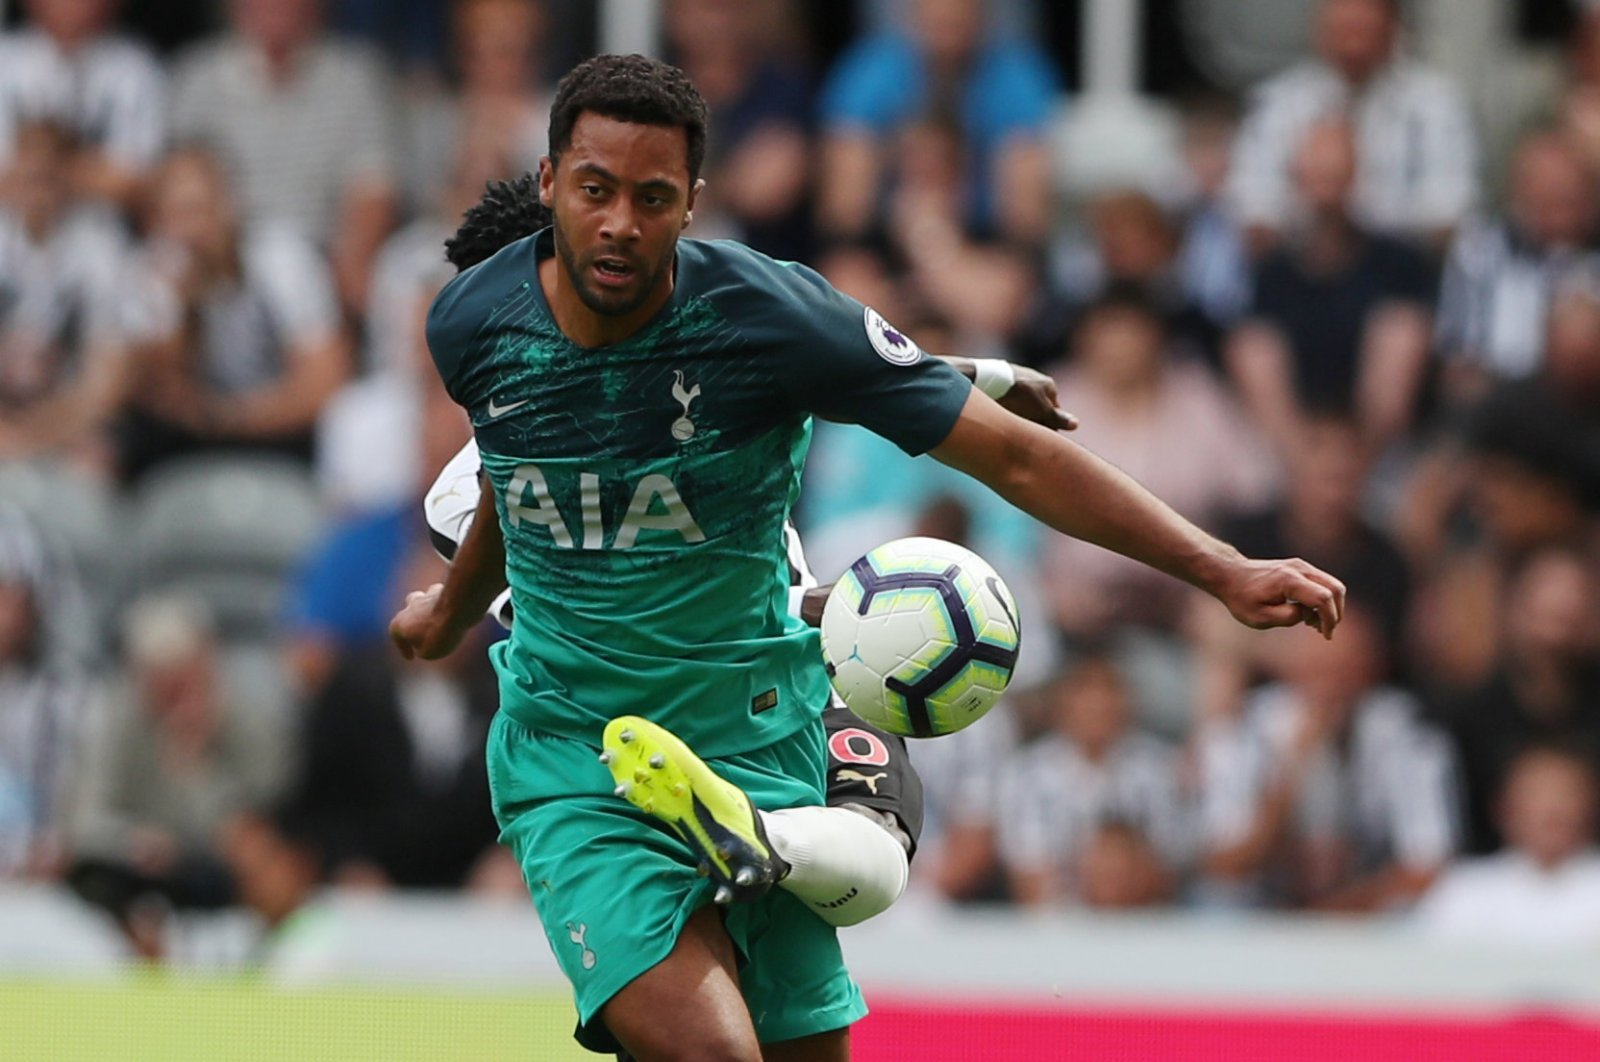 Tottenham fans are so wrong: Losing Mousa Dembele wouldn't be the end of the world